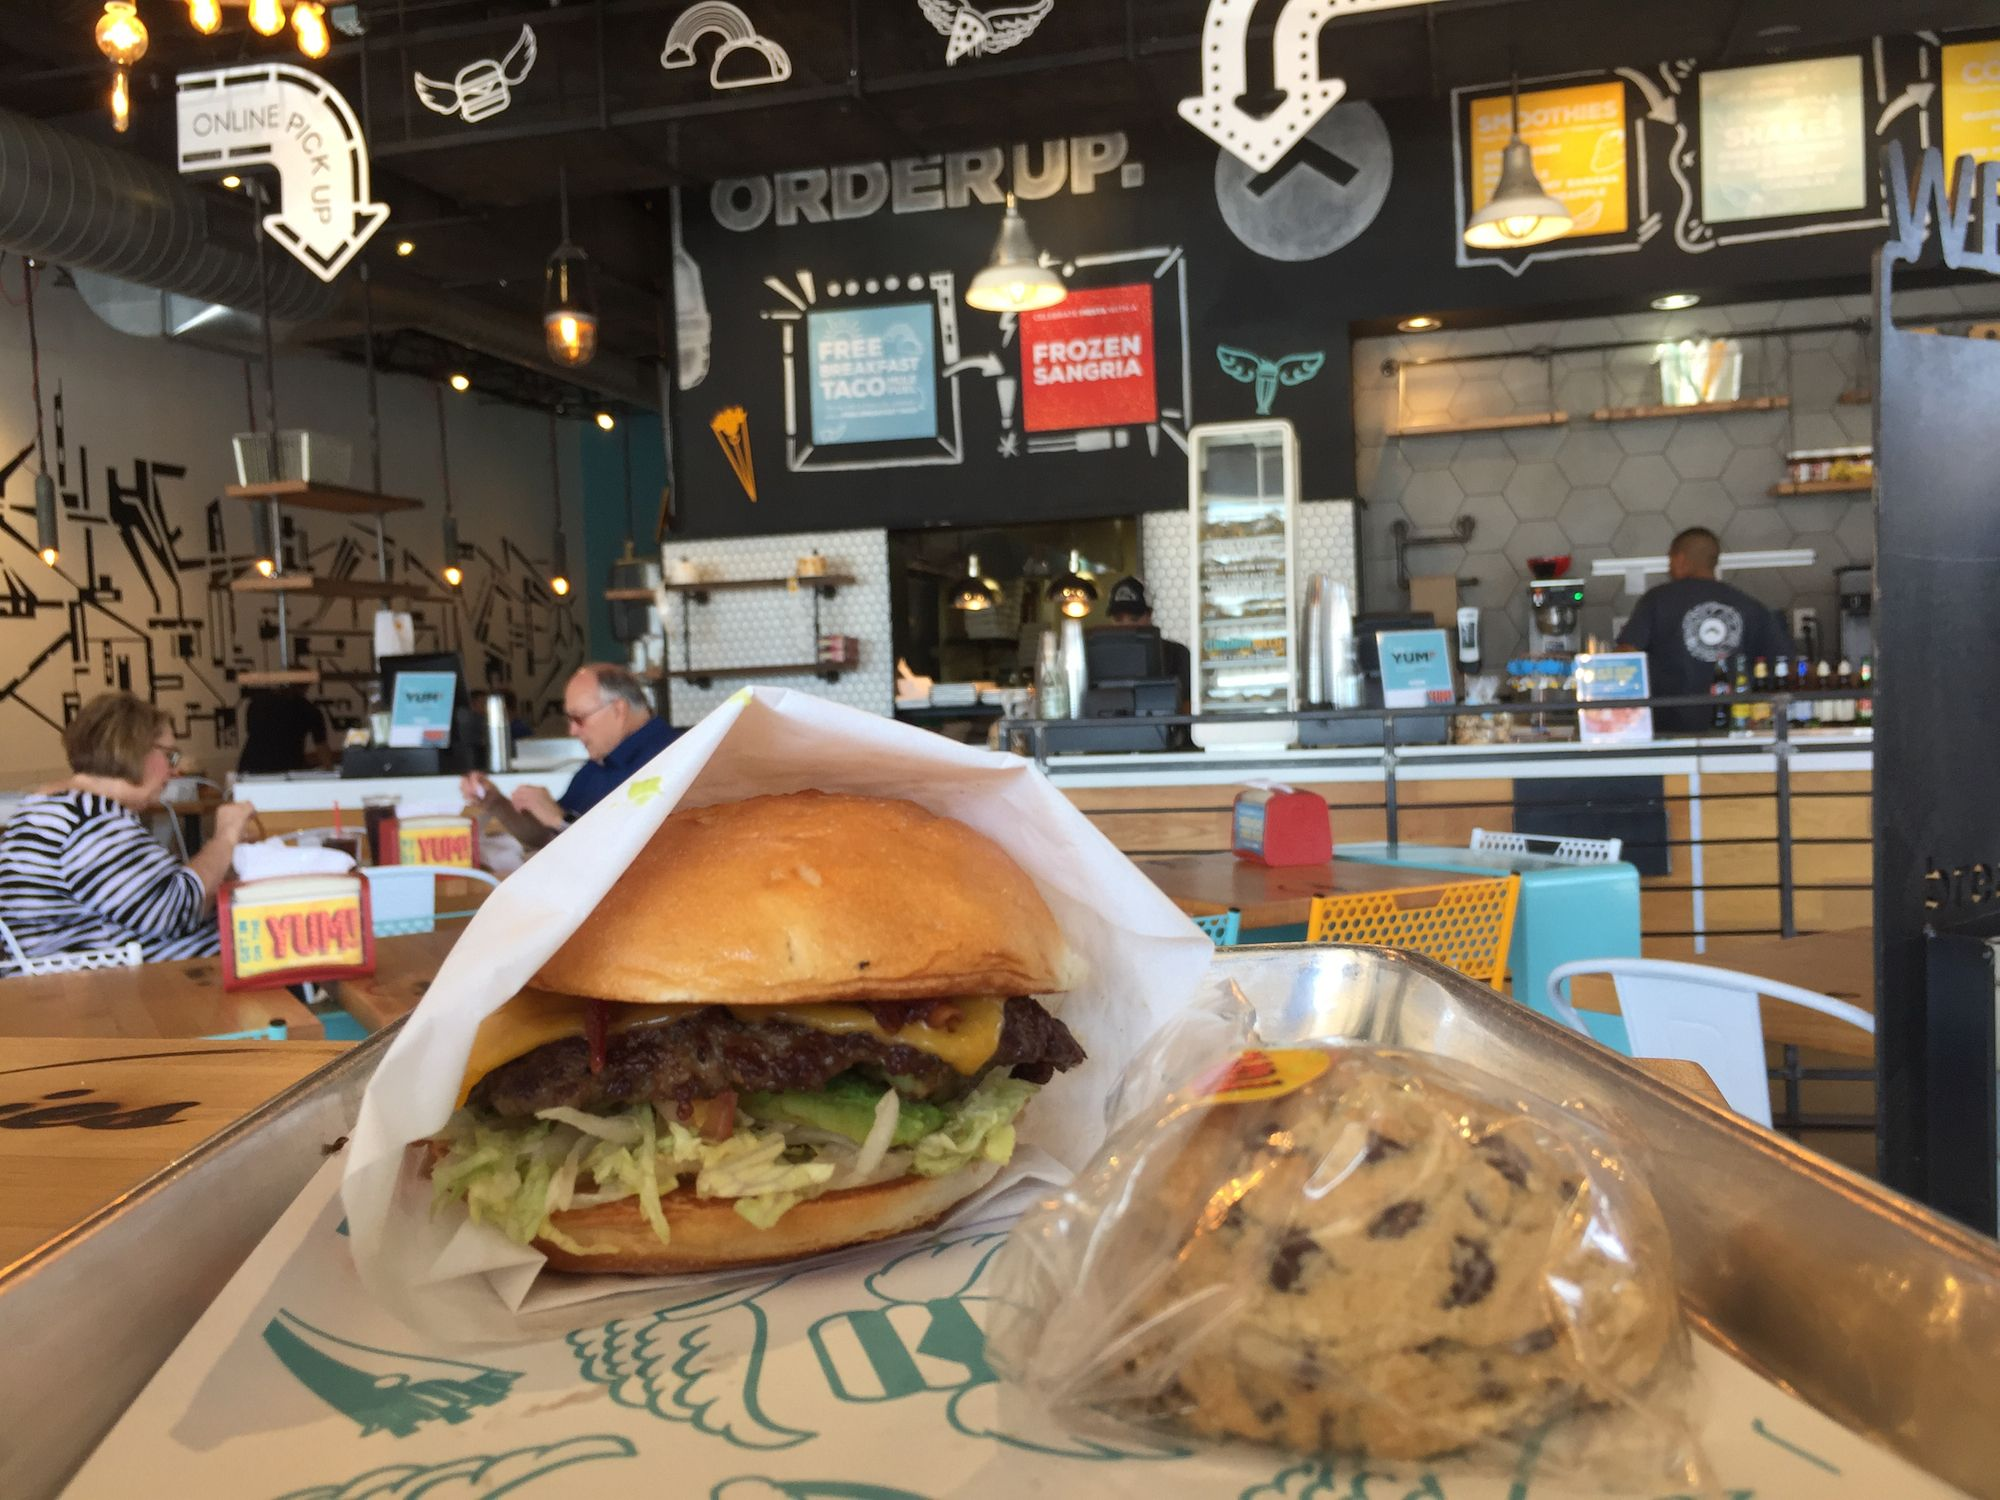 Orderup Great Fg Burgers And Amazing Gf Chocolate Chip Cookies This Was In San Antonio Tx